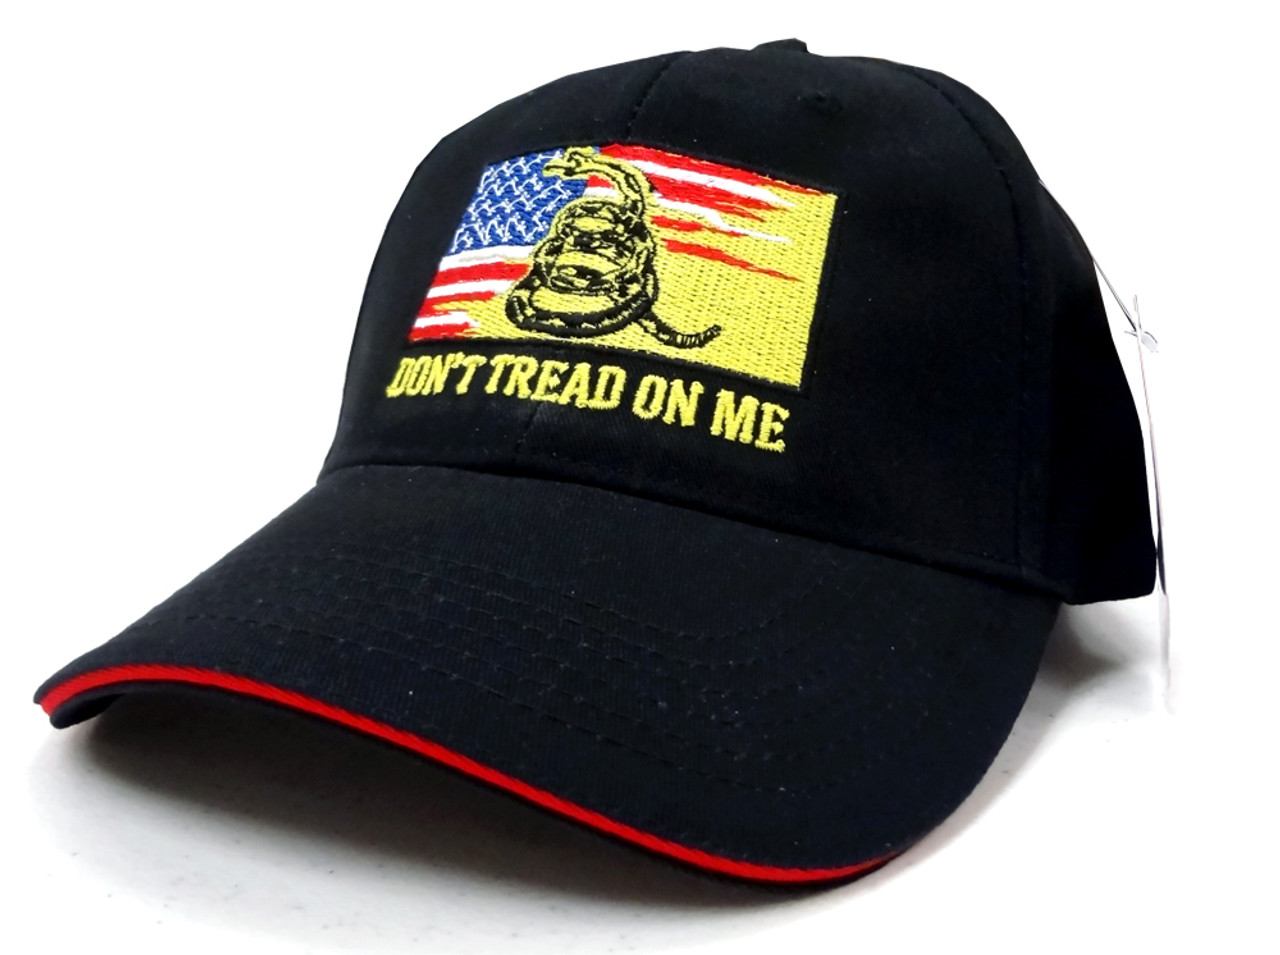 073d79217b1 Don t Tread on Me Baseball Cap - Made In America Store